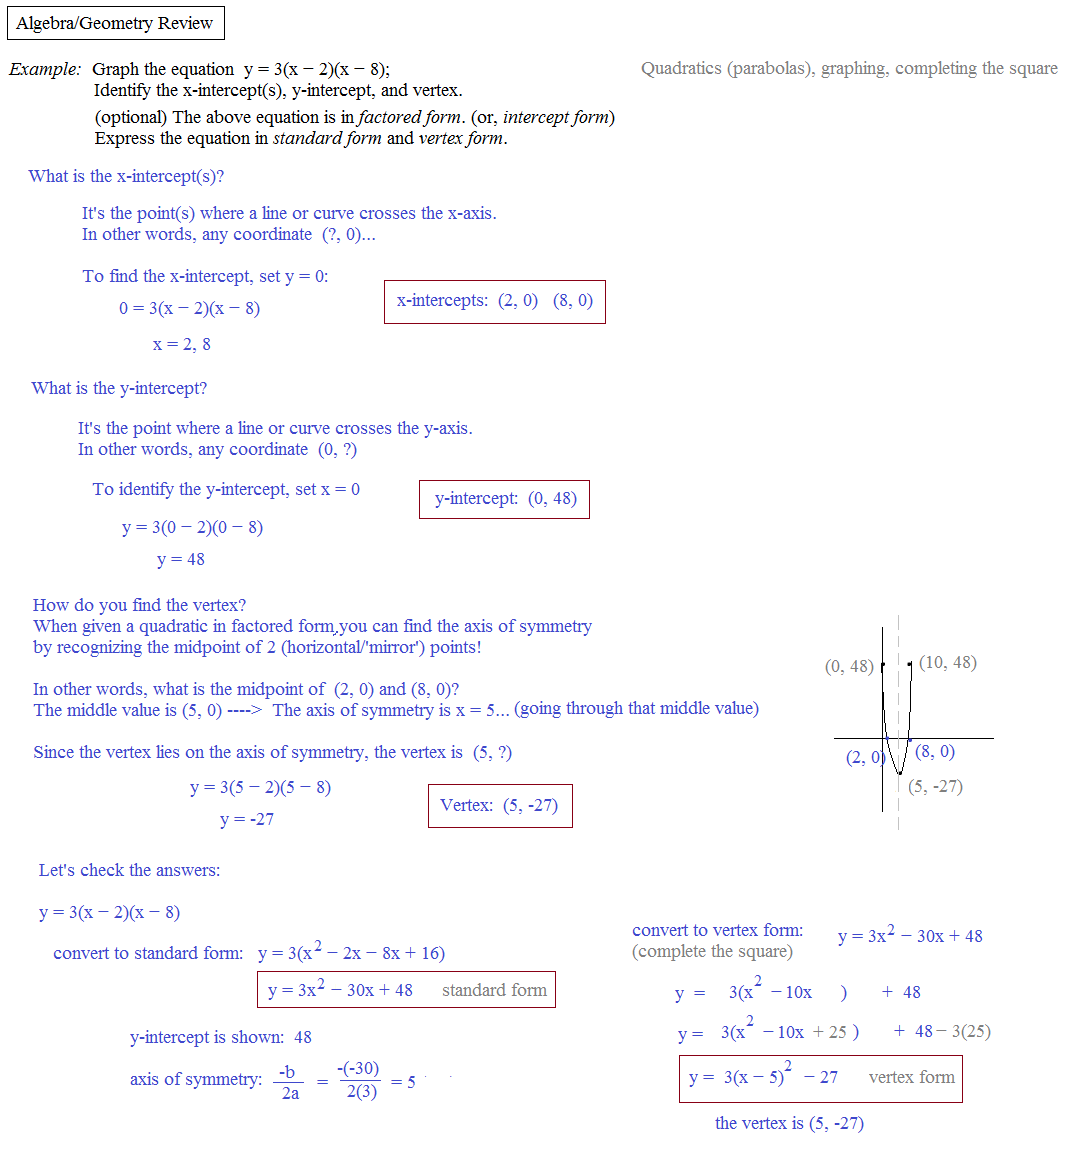 math reveiw Precalculus review and calculus preview - shows precalculus math in the exact way you'll use it for calculus - also gives a preview to many calculus concepts.